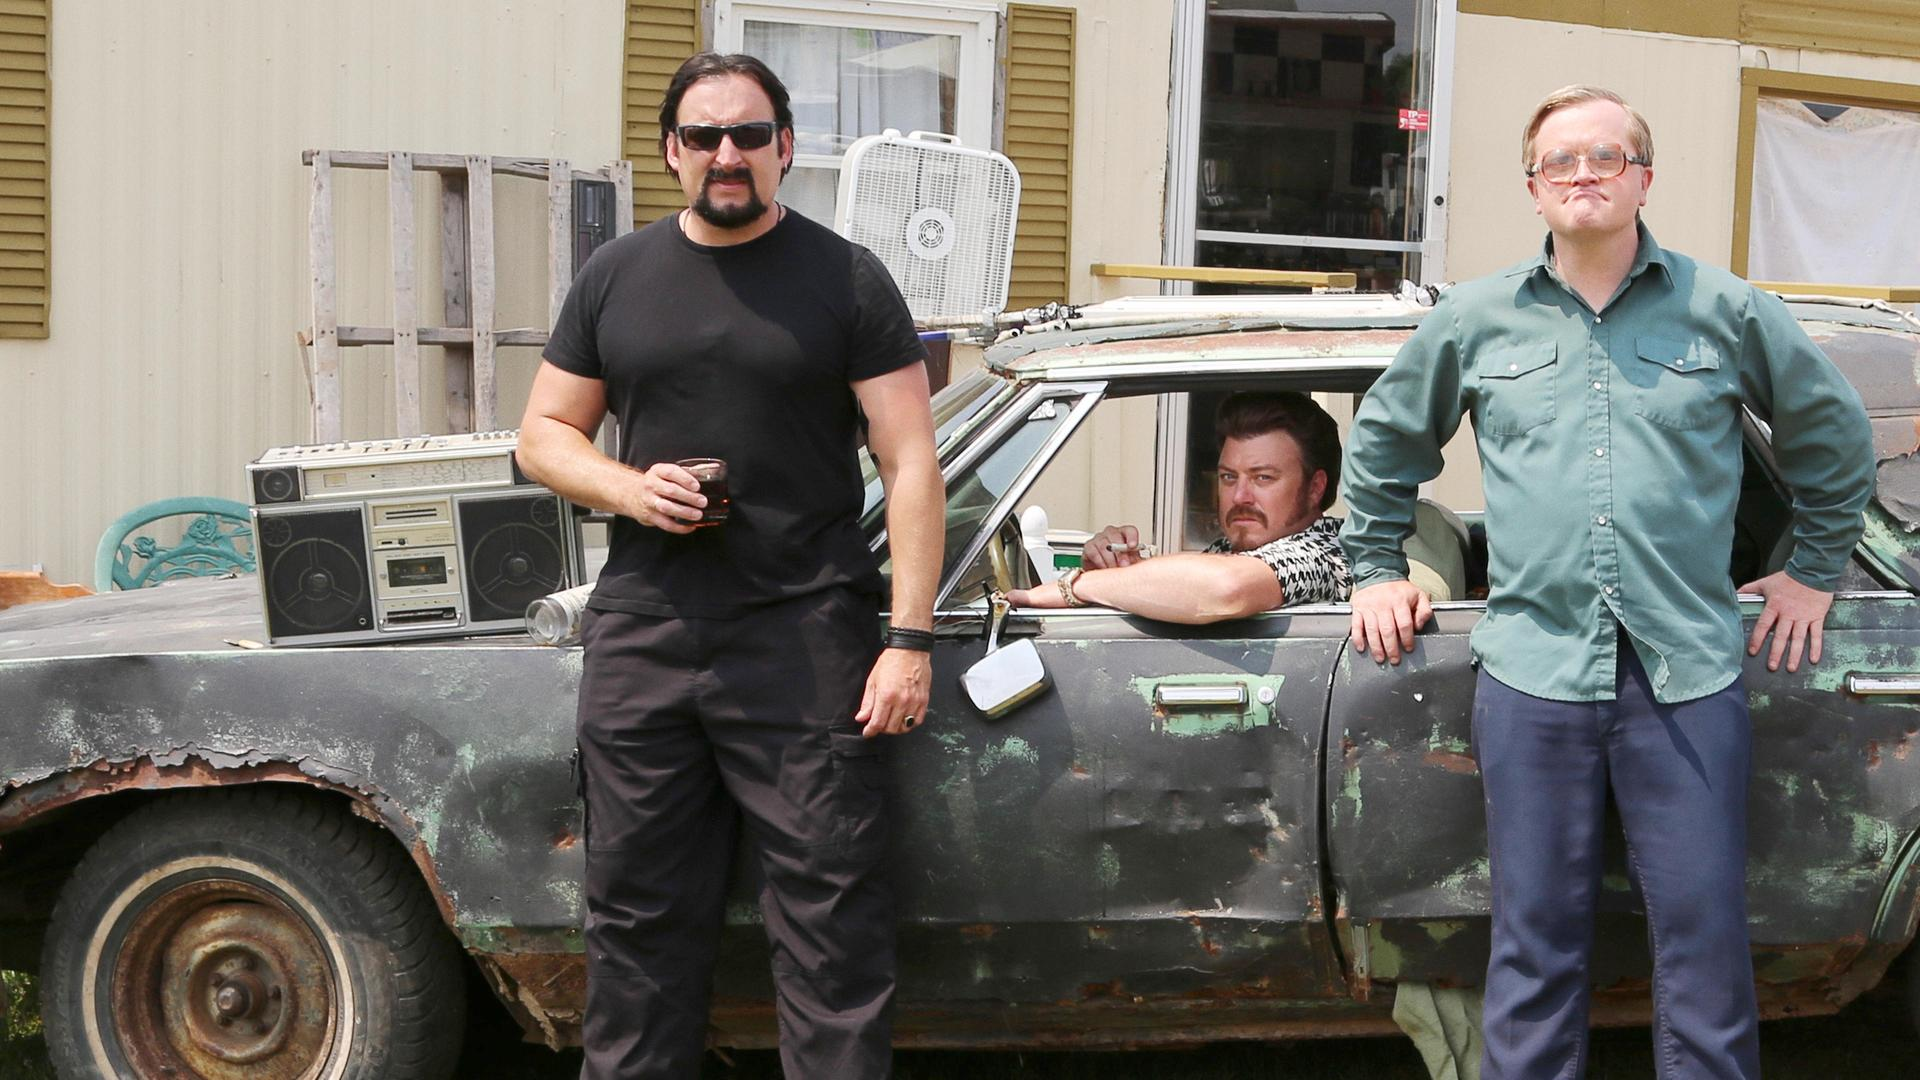 Trailer Park Boys Drunk High And Unemployed Live In Austi Image